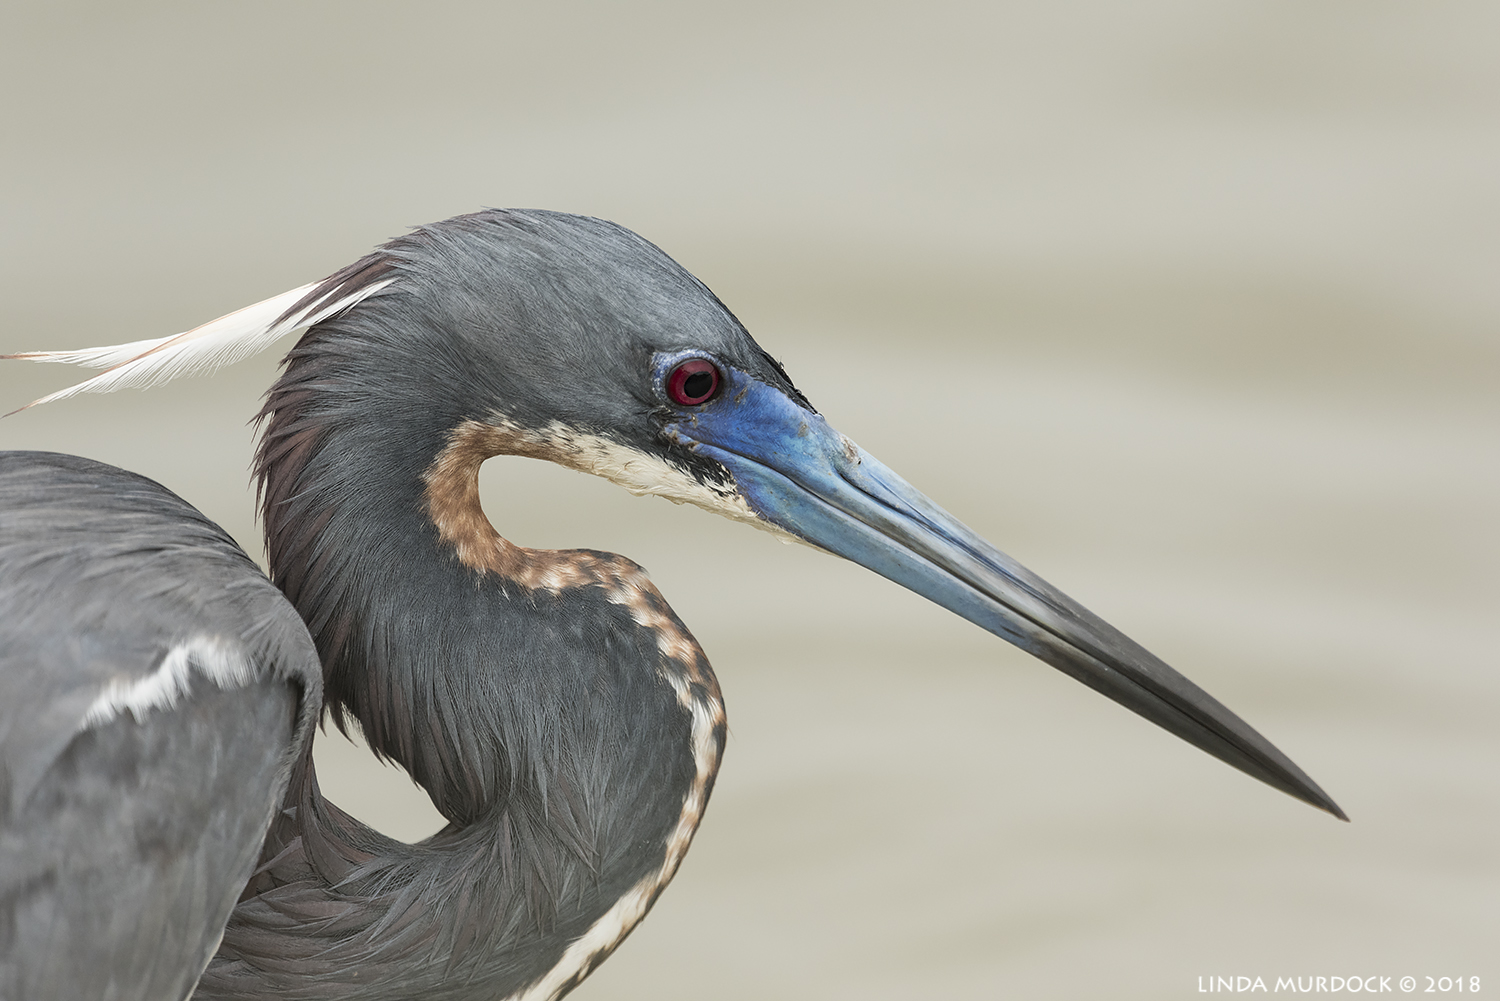 Portrait of Tricolored Heron with breeding colors Nikon D810 with NIKKOR 500mm f/4E VR + Nikon 1.7x TC ~ 1/2000  sec f/7.1 ISO 1250; braced in window